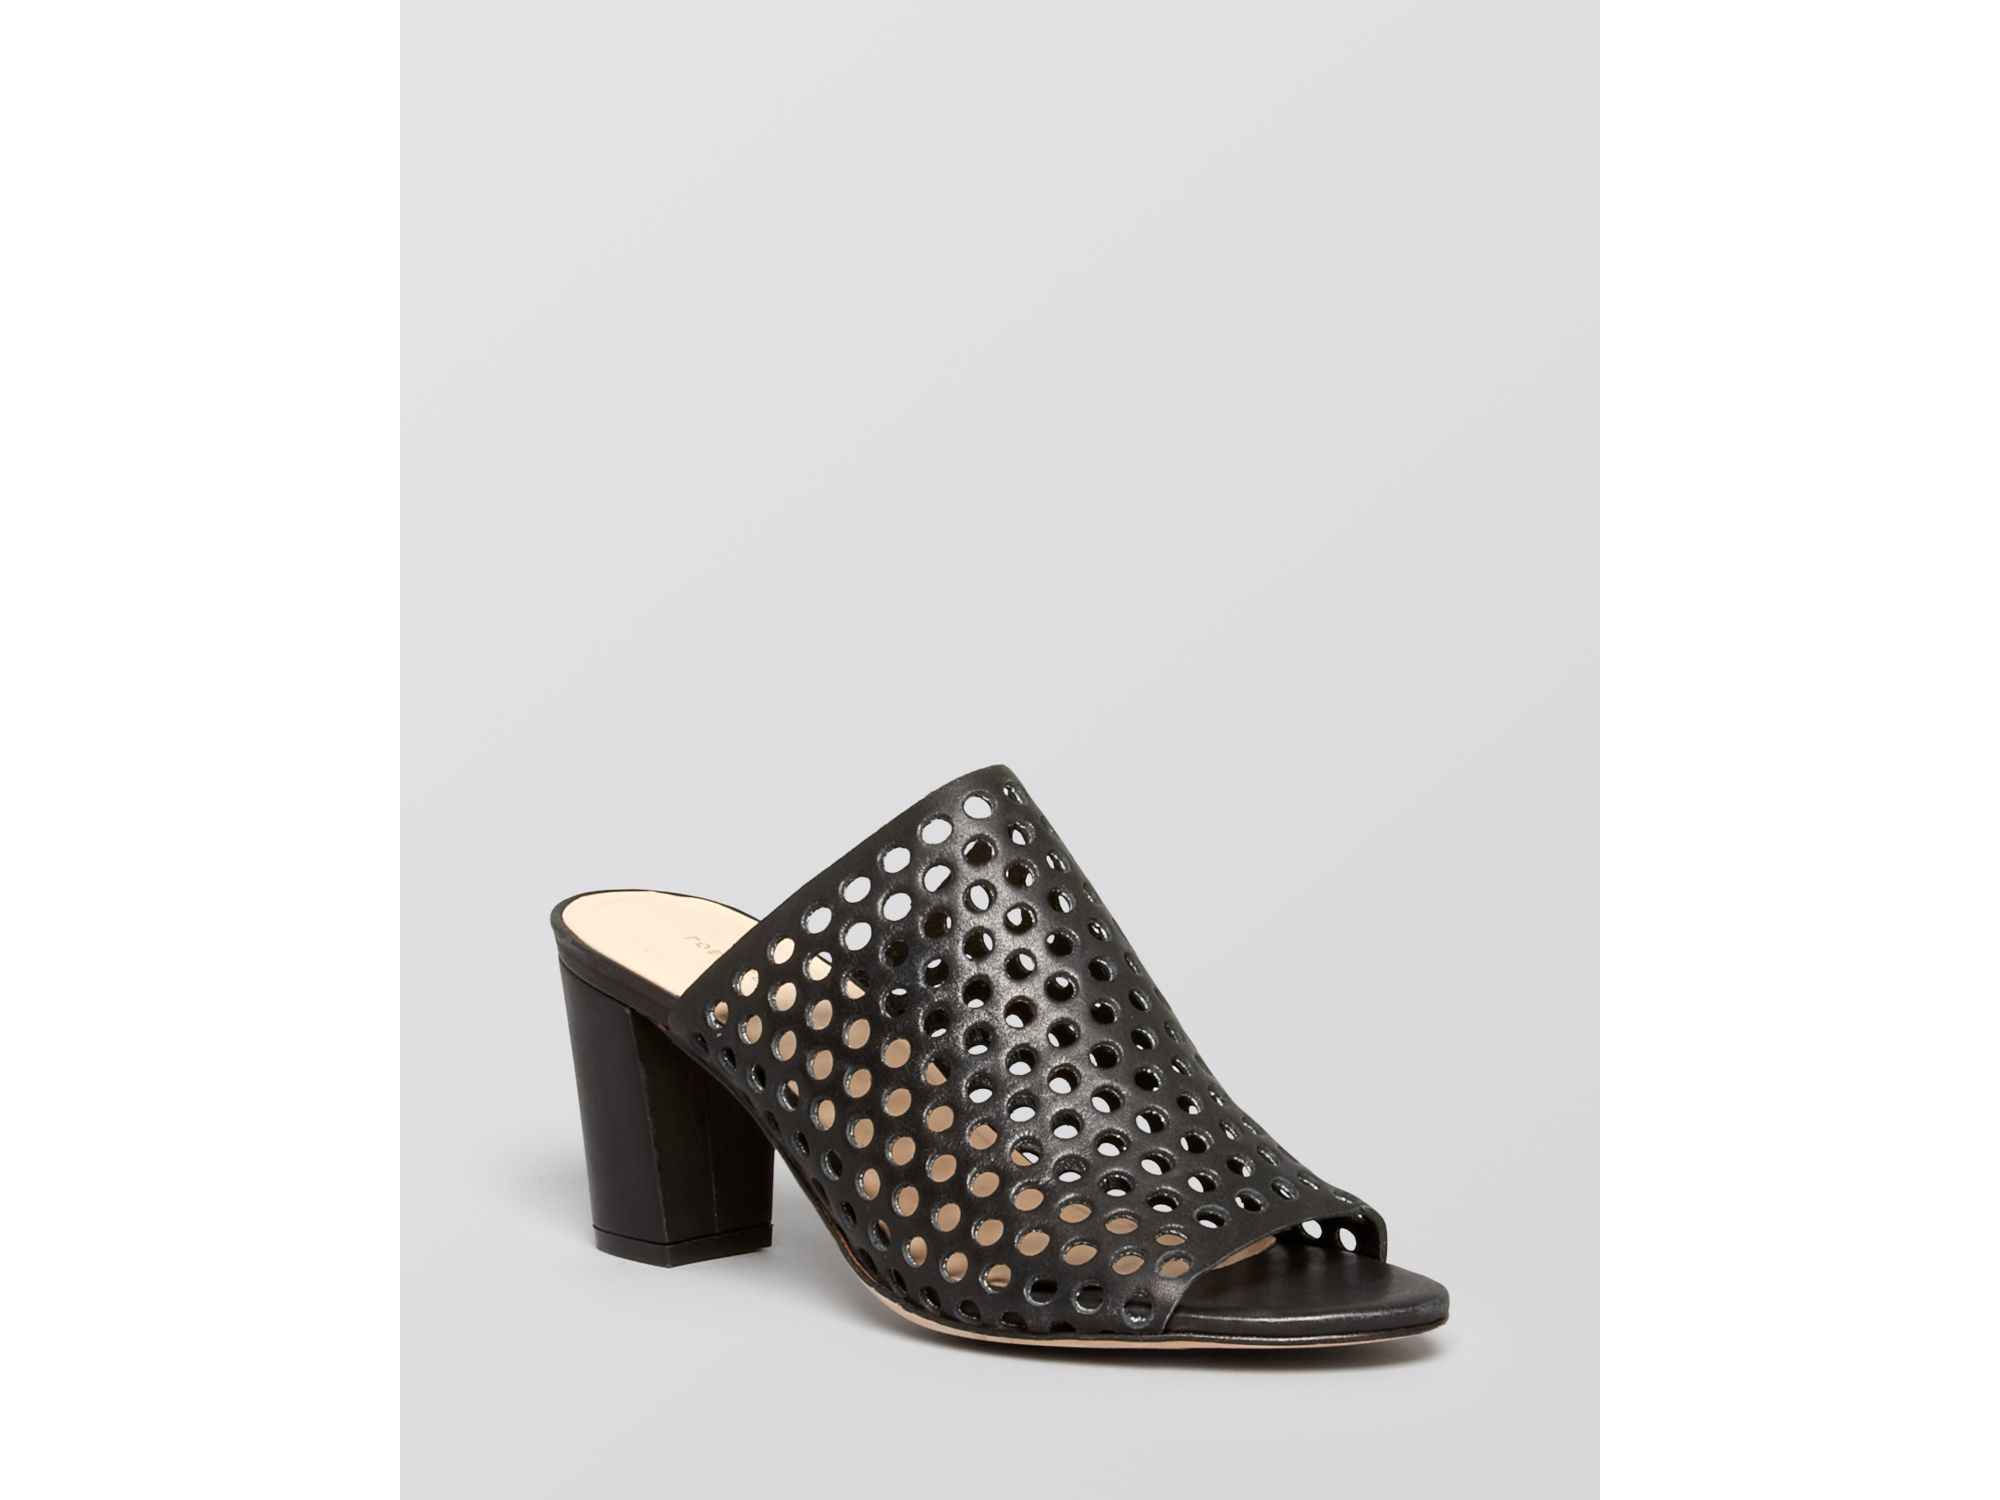 websites online clearance outlet Loeffler Randall Perforated Platform Sandals discount Manchester discount best prices Ph9PB